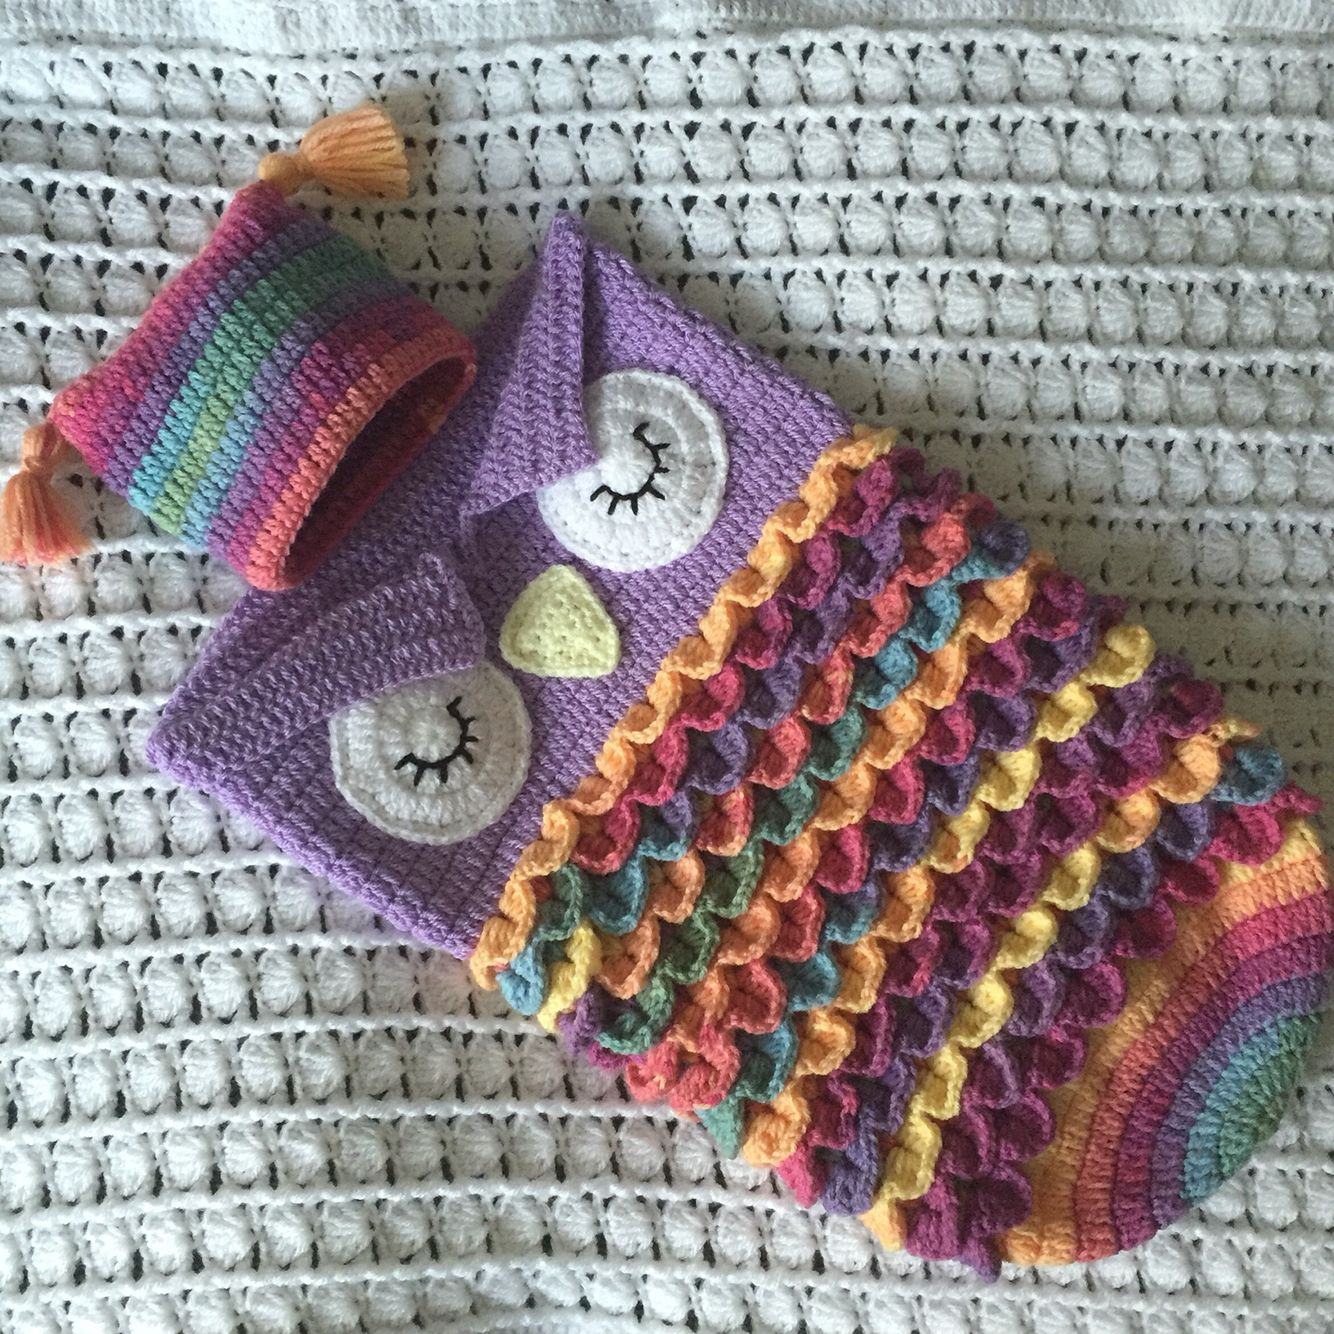 Different Crochet Patterns Best Of Pleted Owl Baby Cocoon & Hat Crochet Crocodile Of Brilliant 48 Pictures Different Crochet Patterns